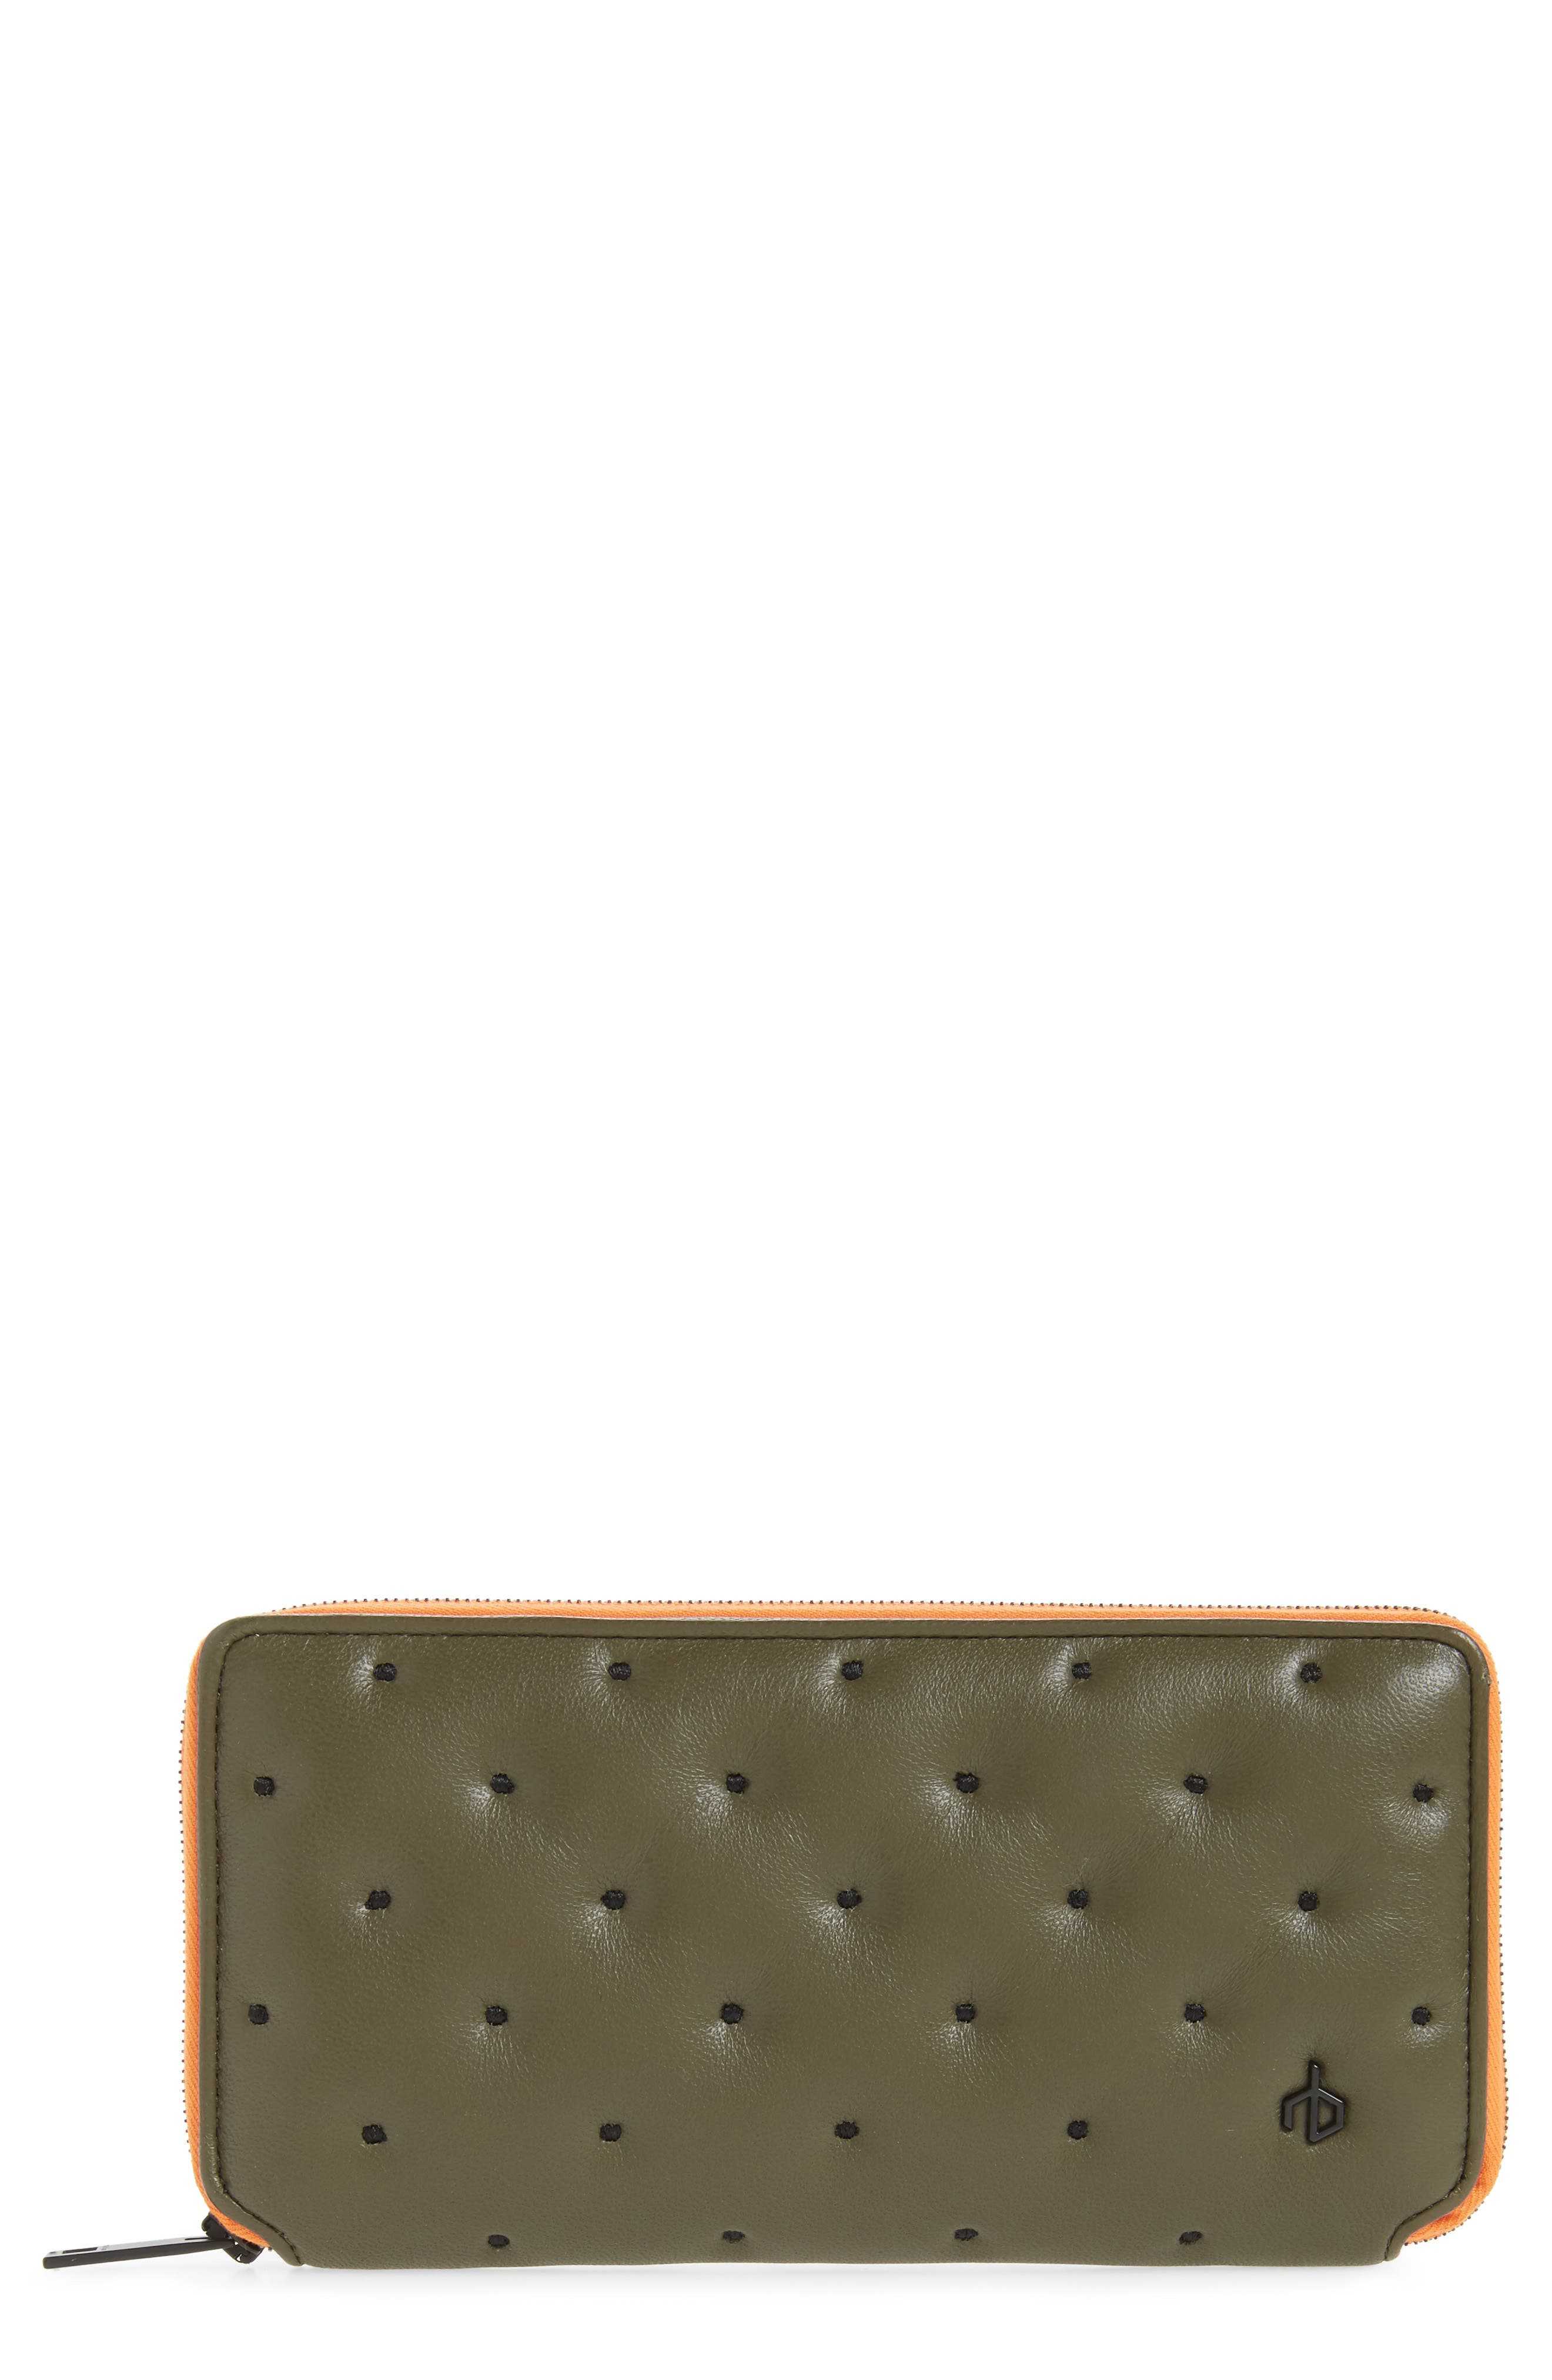 Dot Dash Quilted Leather Zip Around Wallet,                         Main,                         color, 388